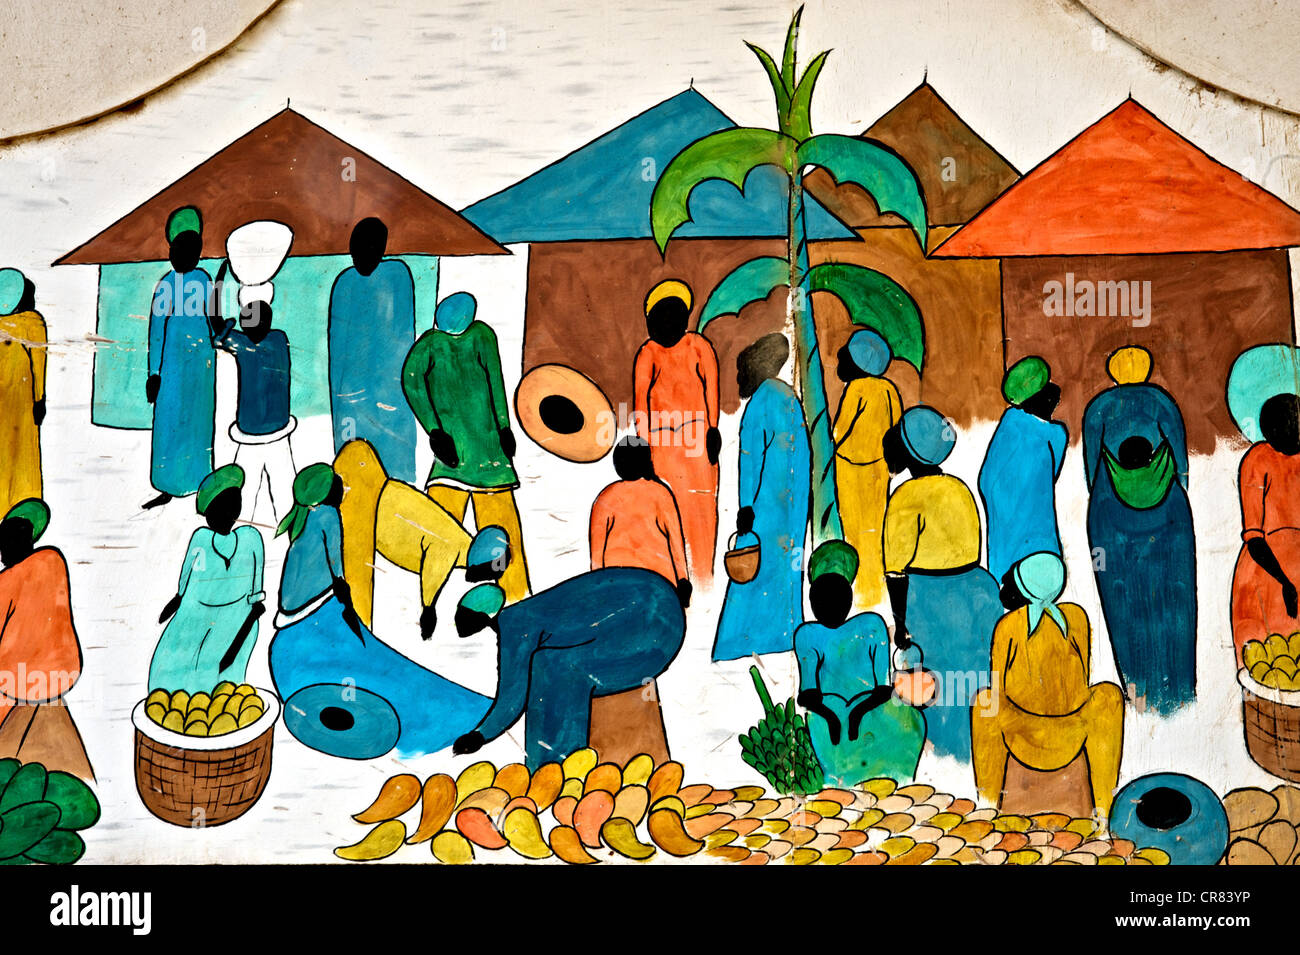 Artistic detail of colorful drawing depicting African life Stock Photo